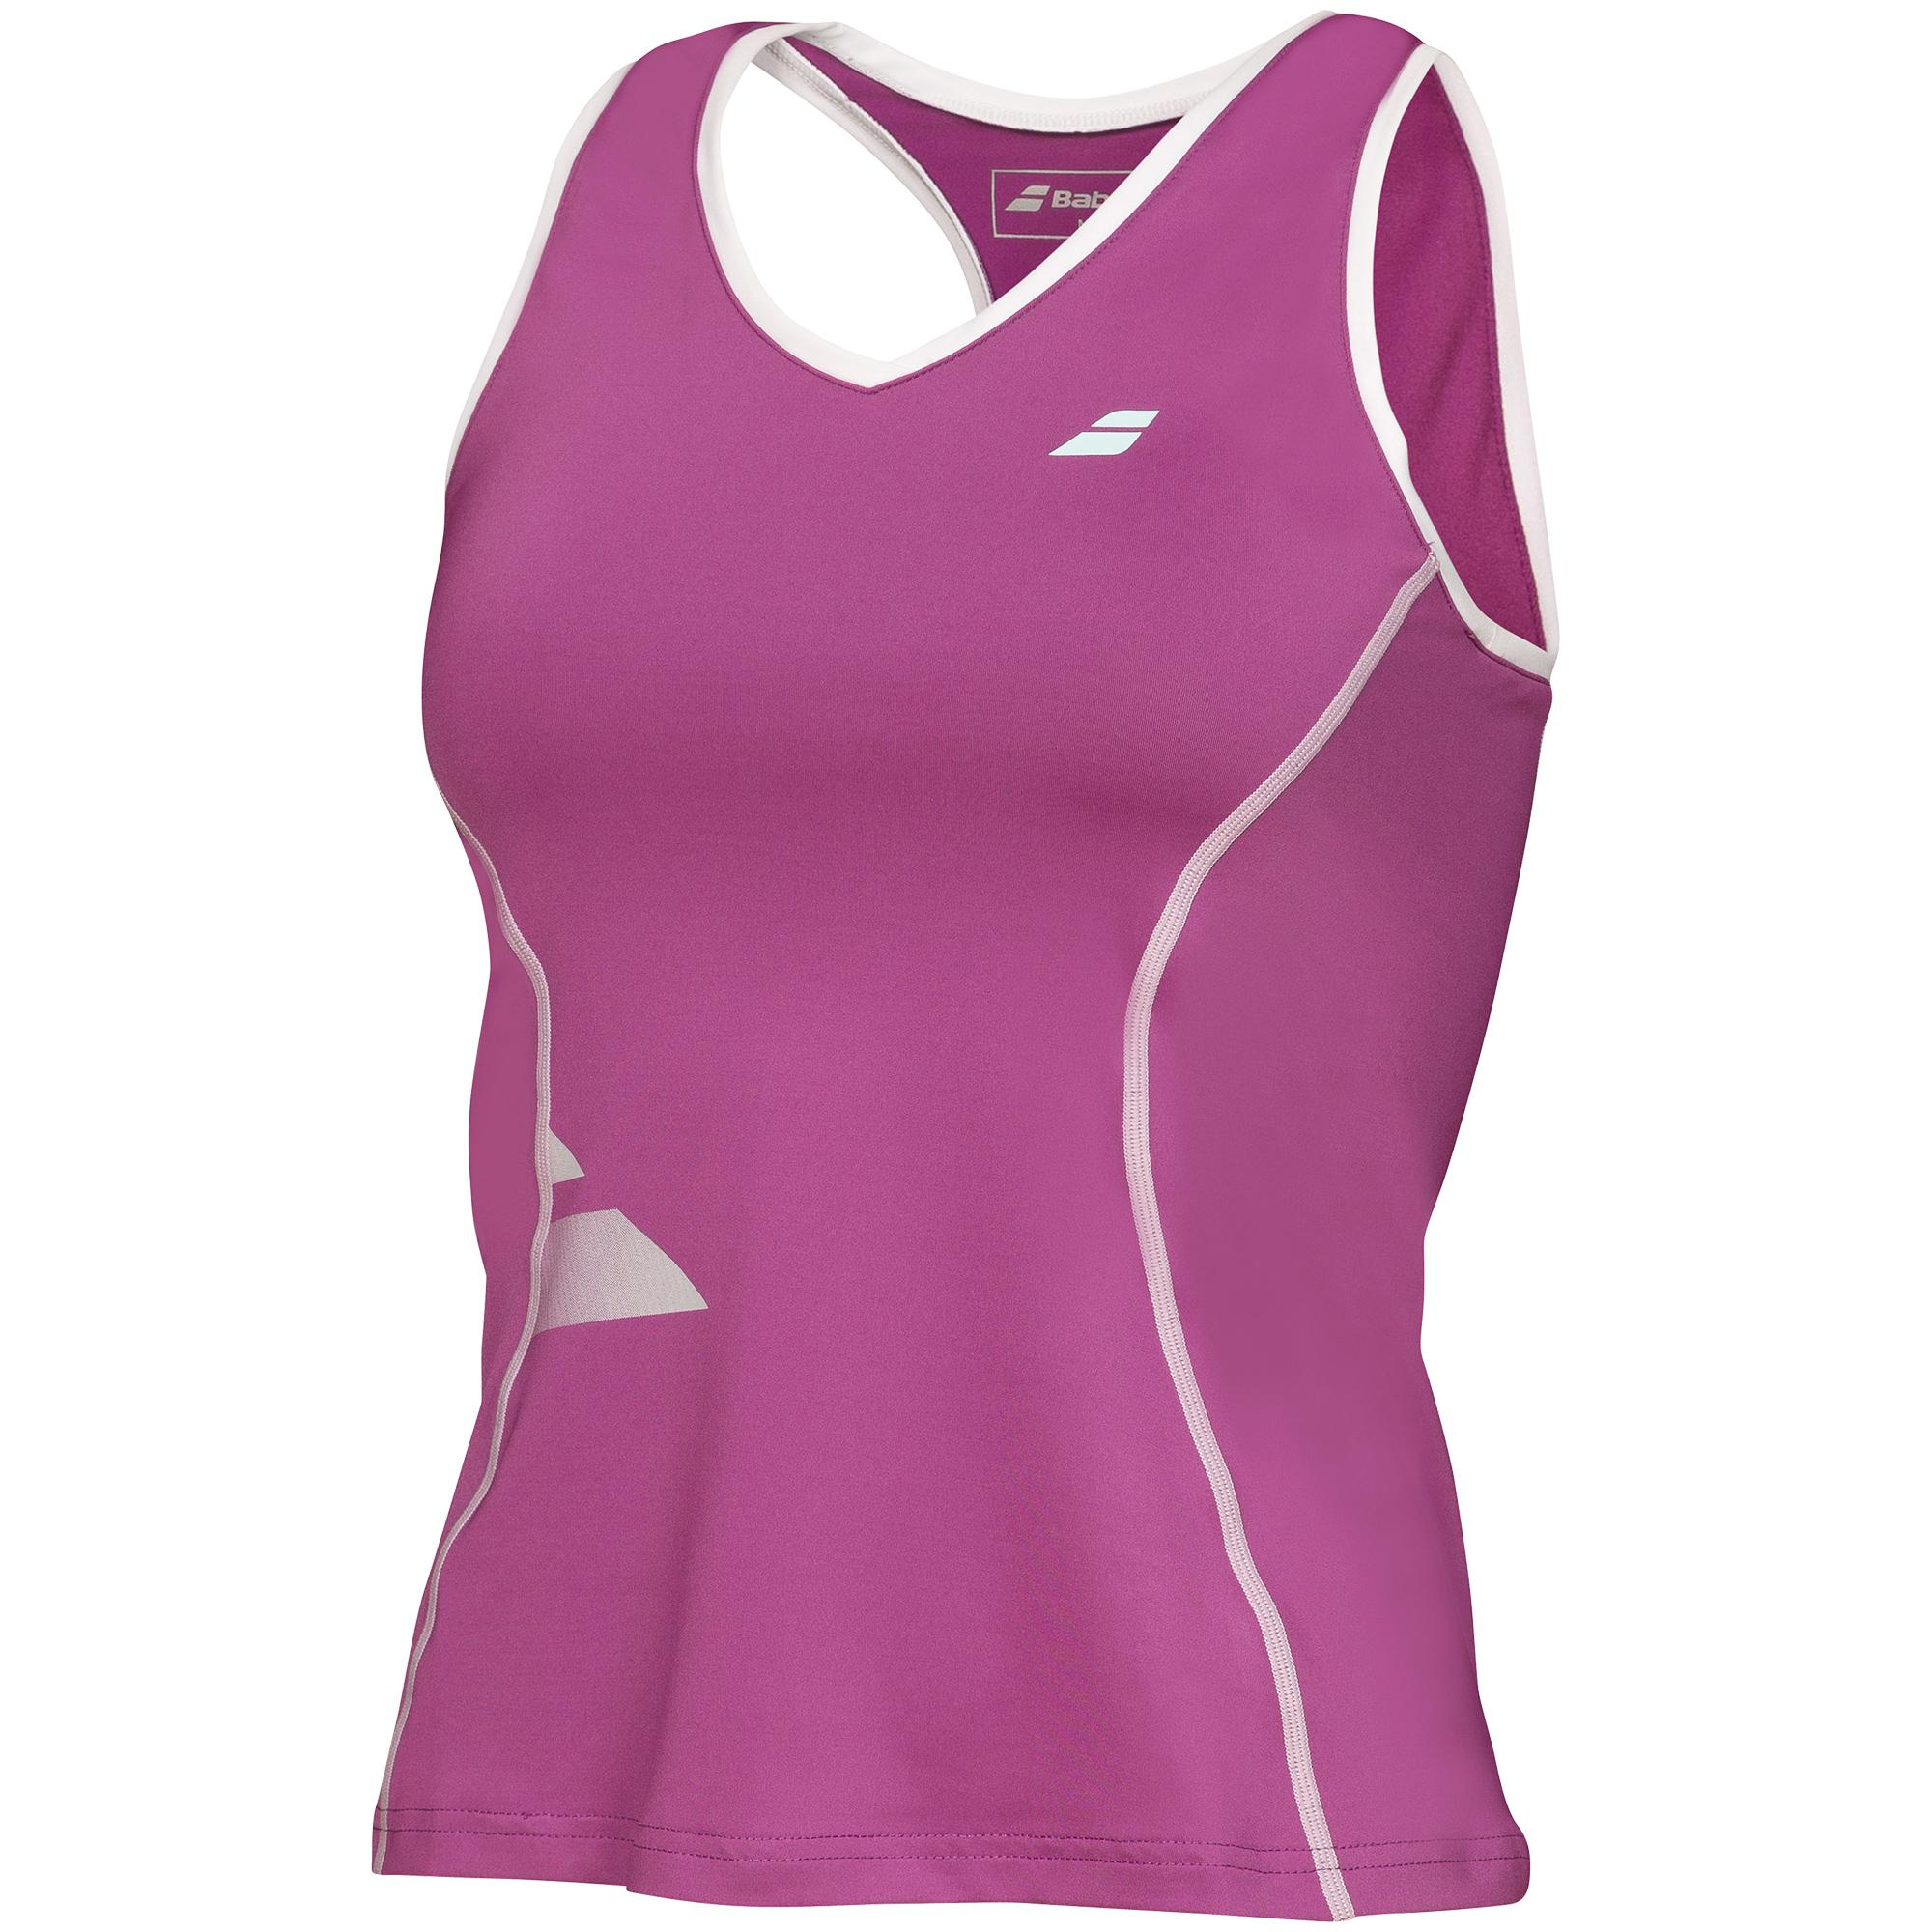 Babolat Crop Tank Top Girl Performance Plum 2016 164